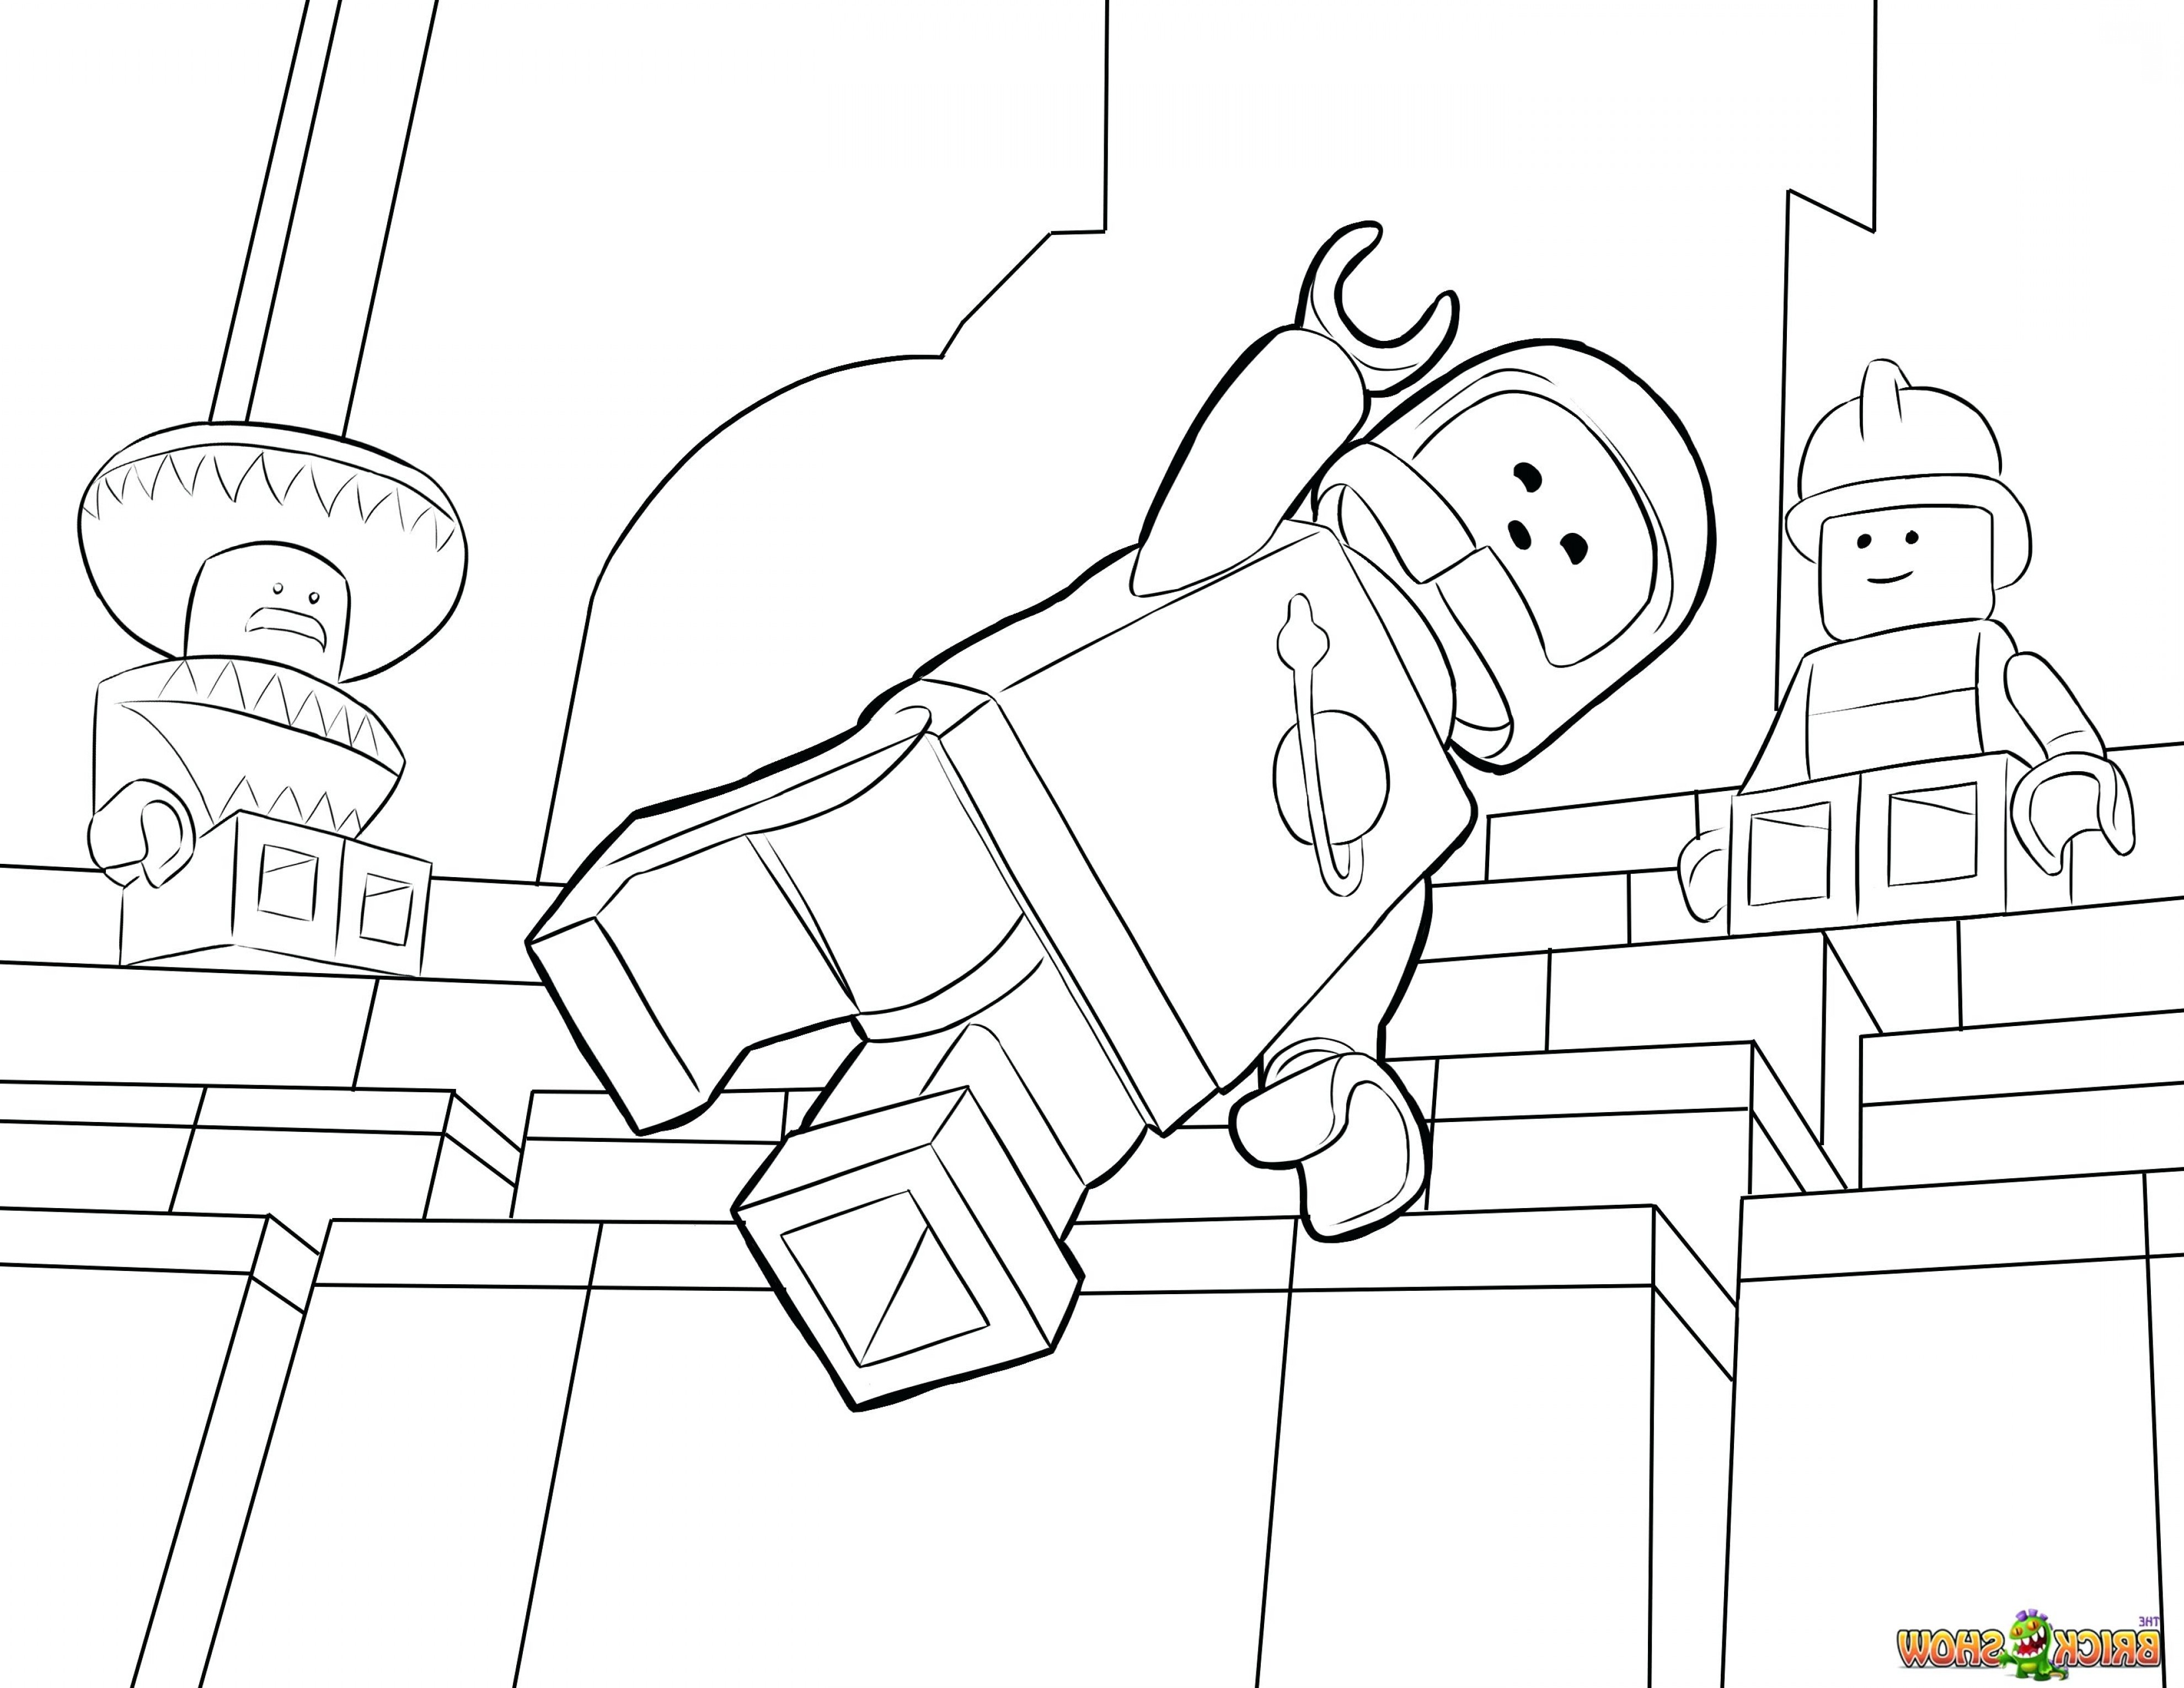 3960x3060 Lego Guy Coloring Pages Ardiafm